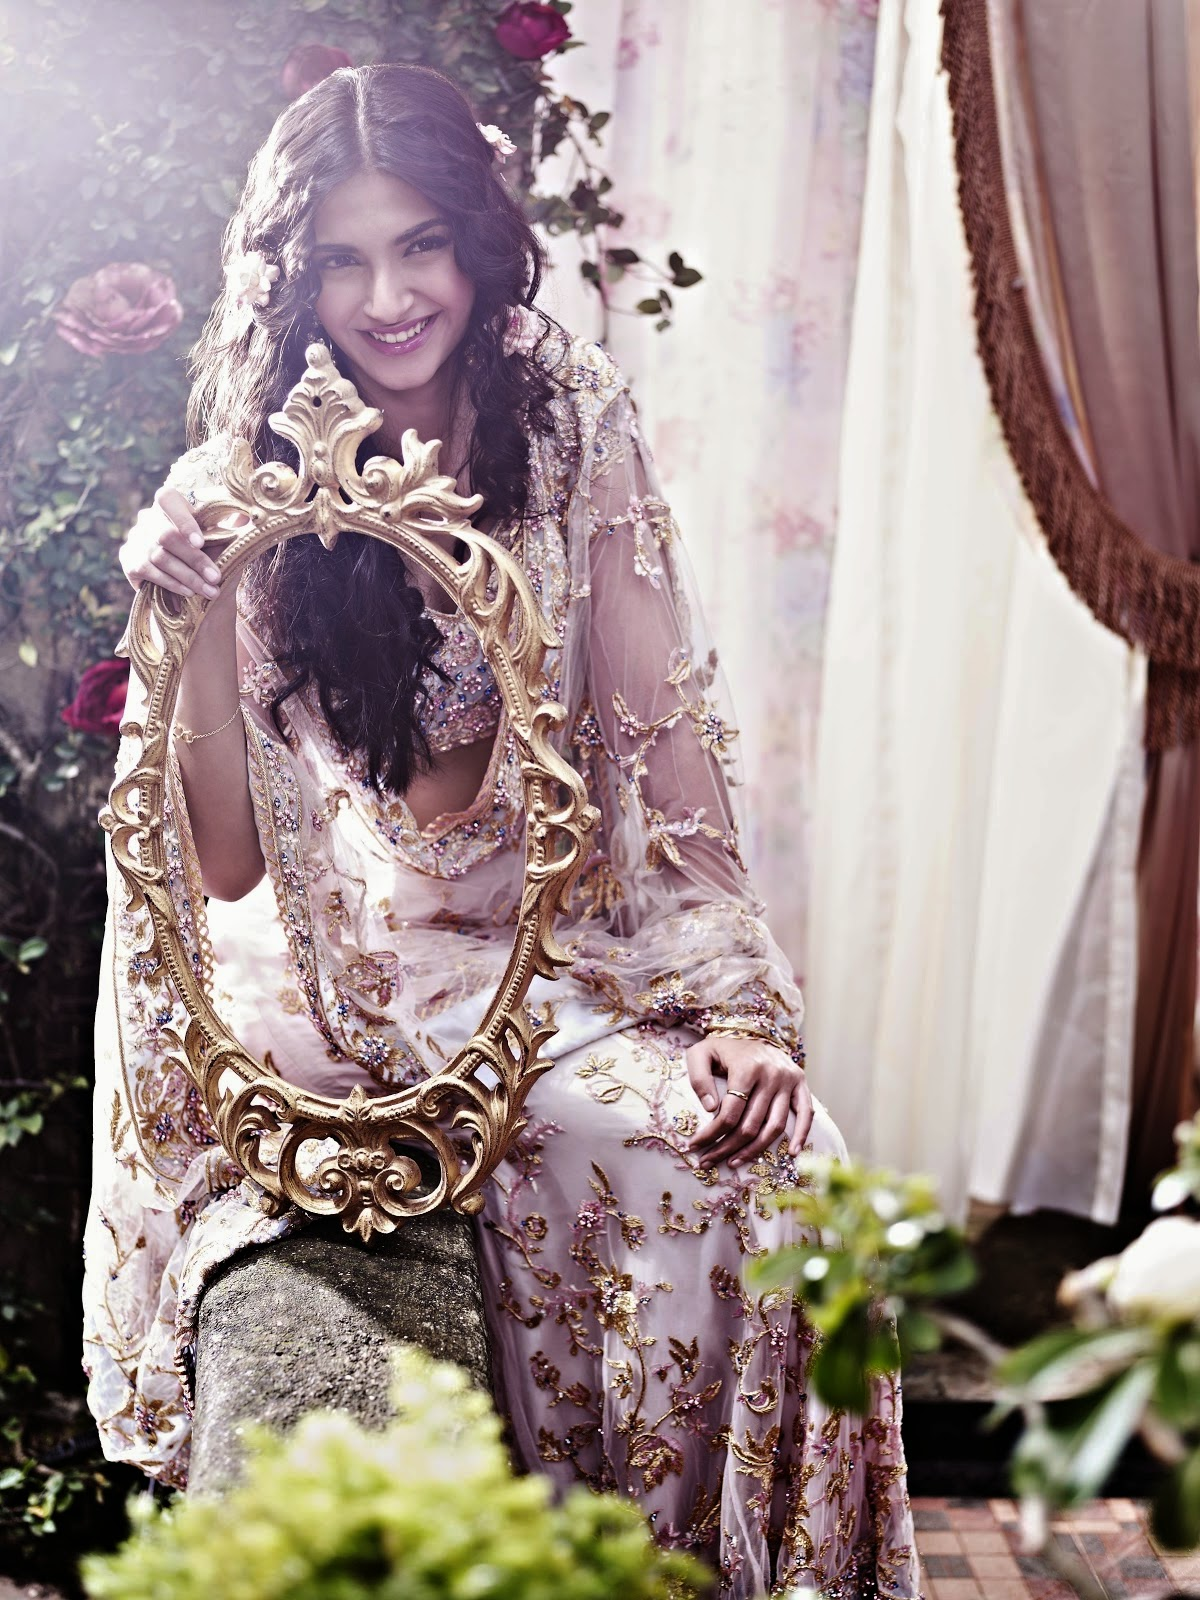 gleebize : happy birthday to sonam kapoor- the fashionista of bollywood